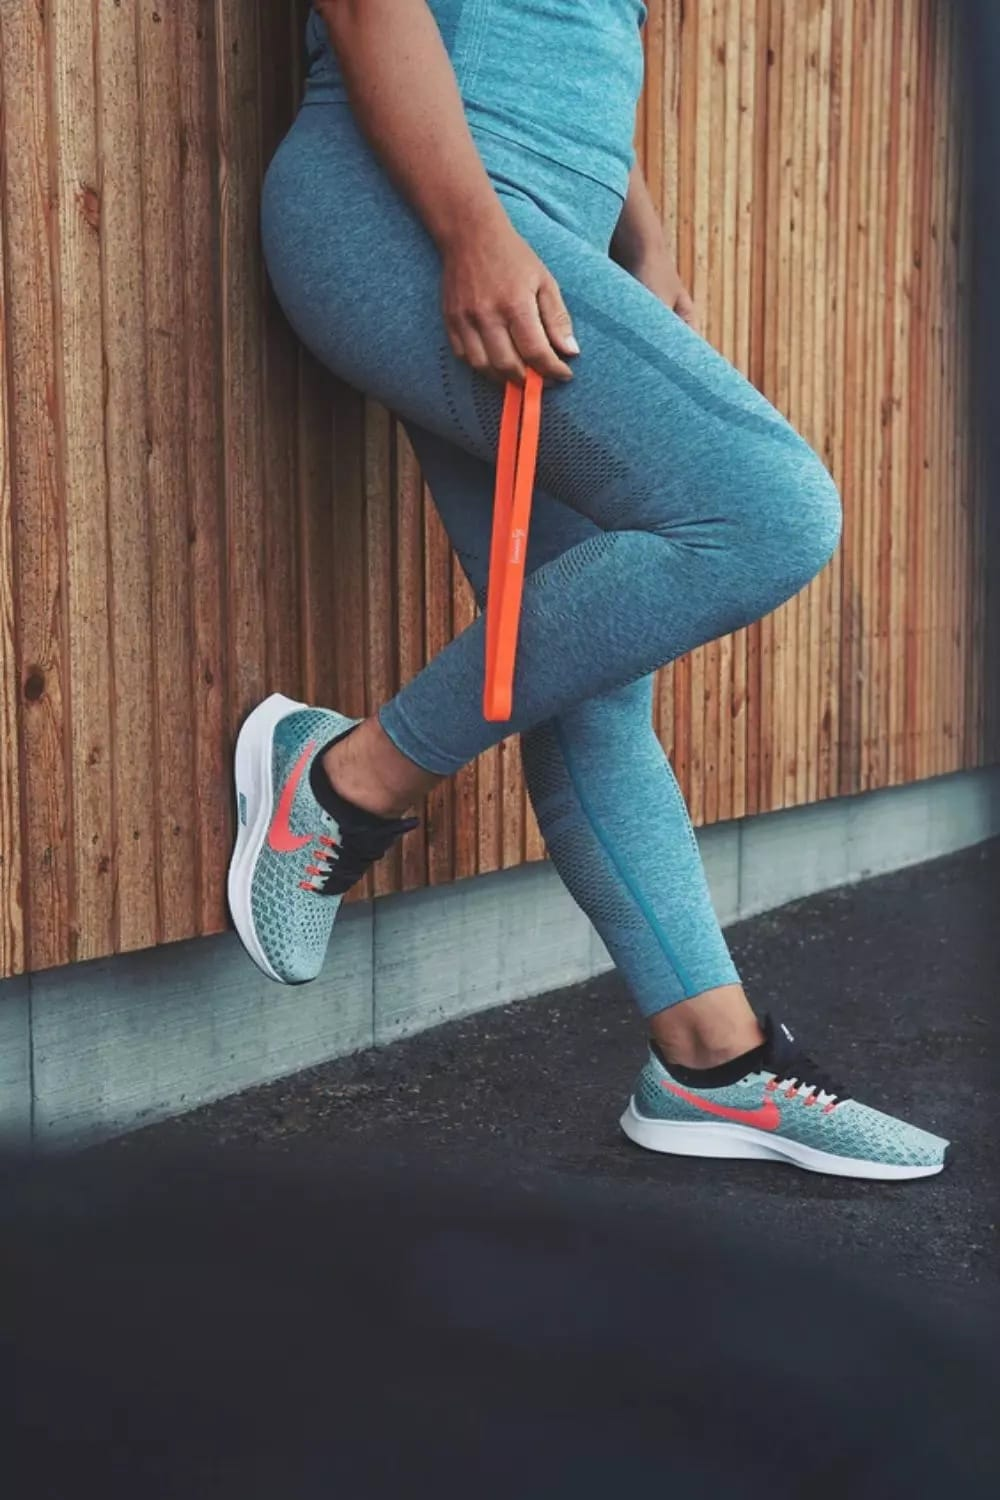 The Best Workout Shoes for Women Image